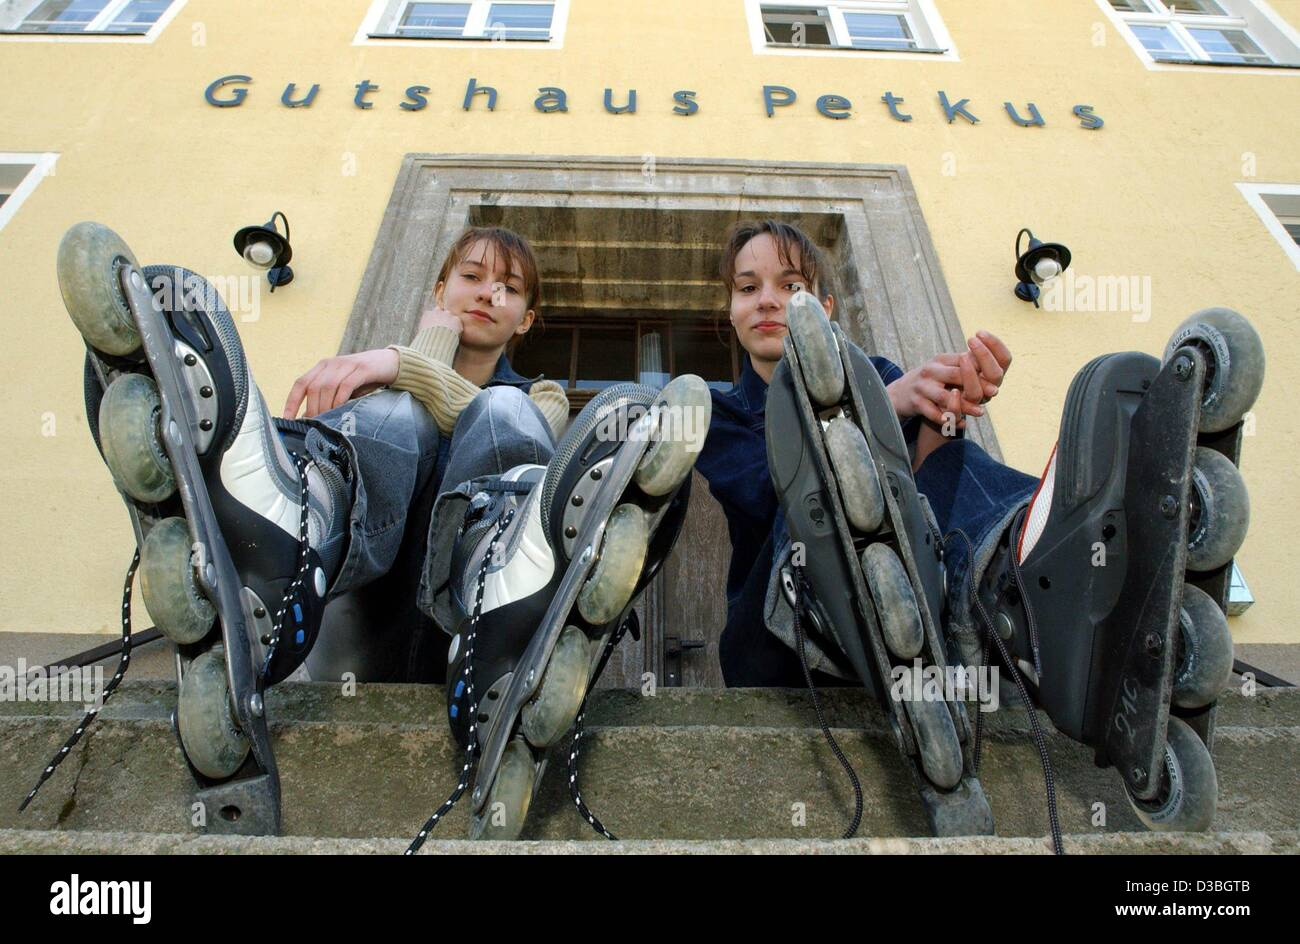 (dpa) - Josephine and Janine put on their inline skates in front of the 'Gutshaus Petkus' (hotel Petkus) - Stock Image